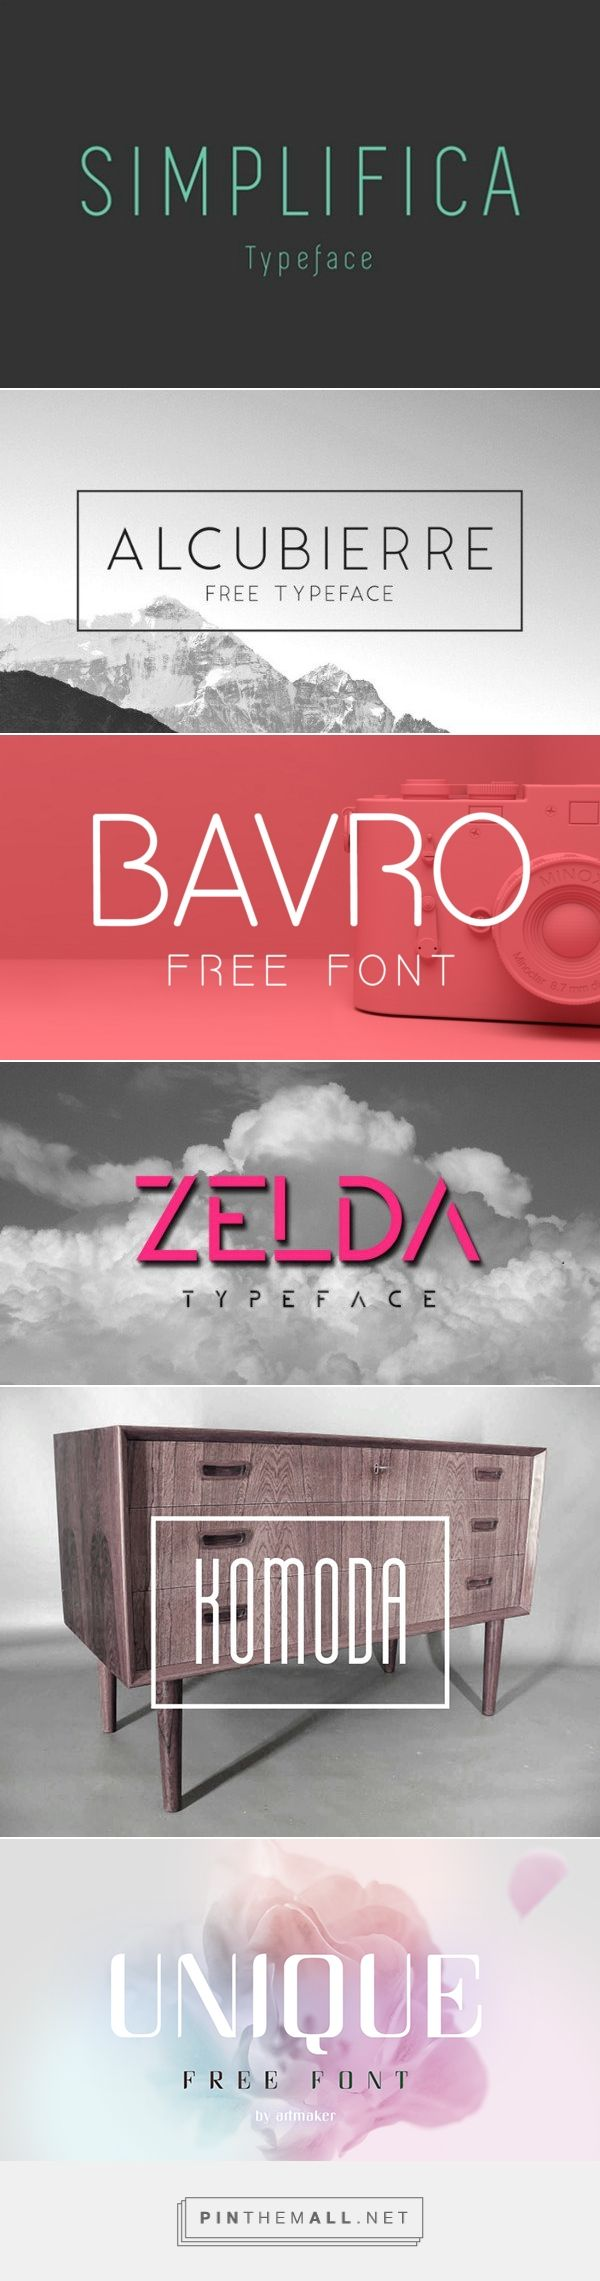 60 Free Sans Serif Fonts to Give Your Designs a Modern Touch